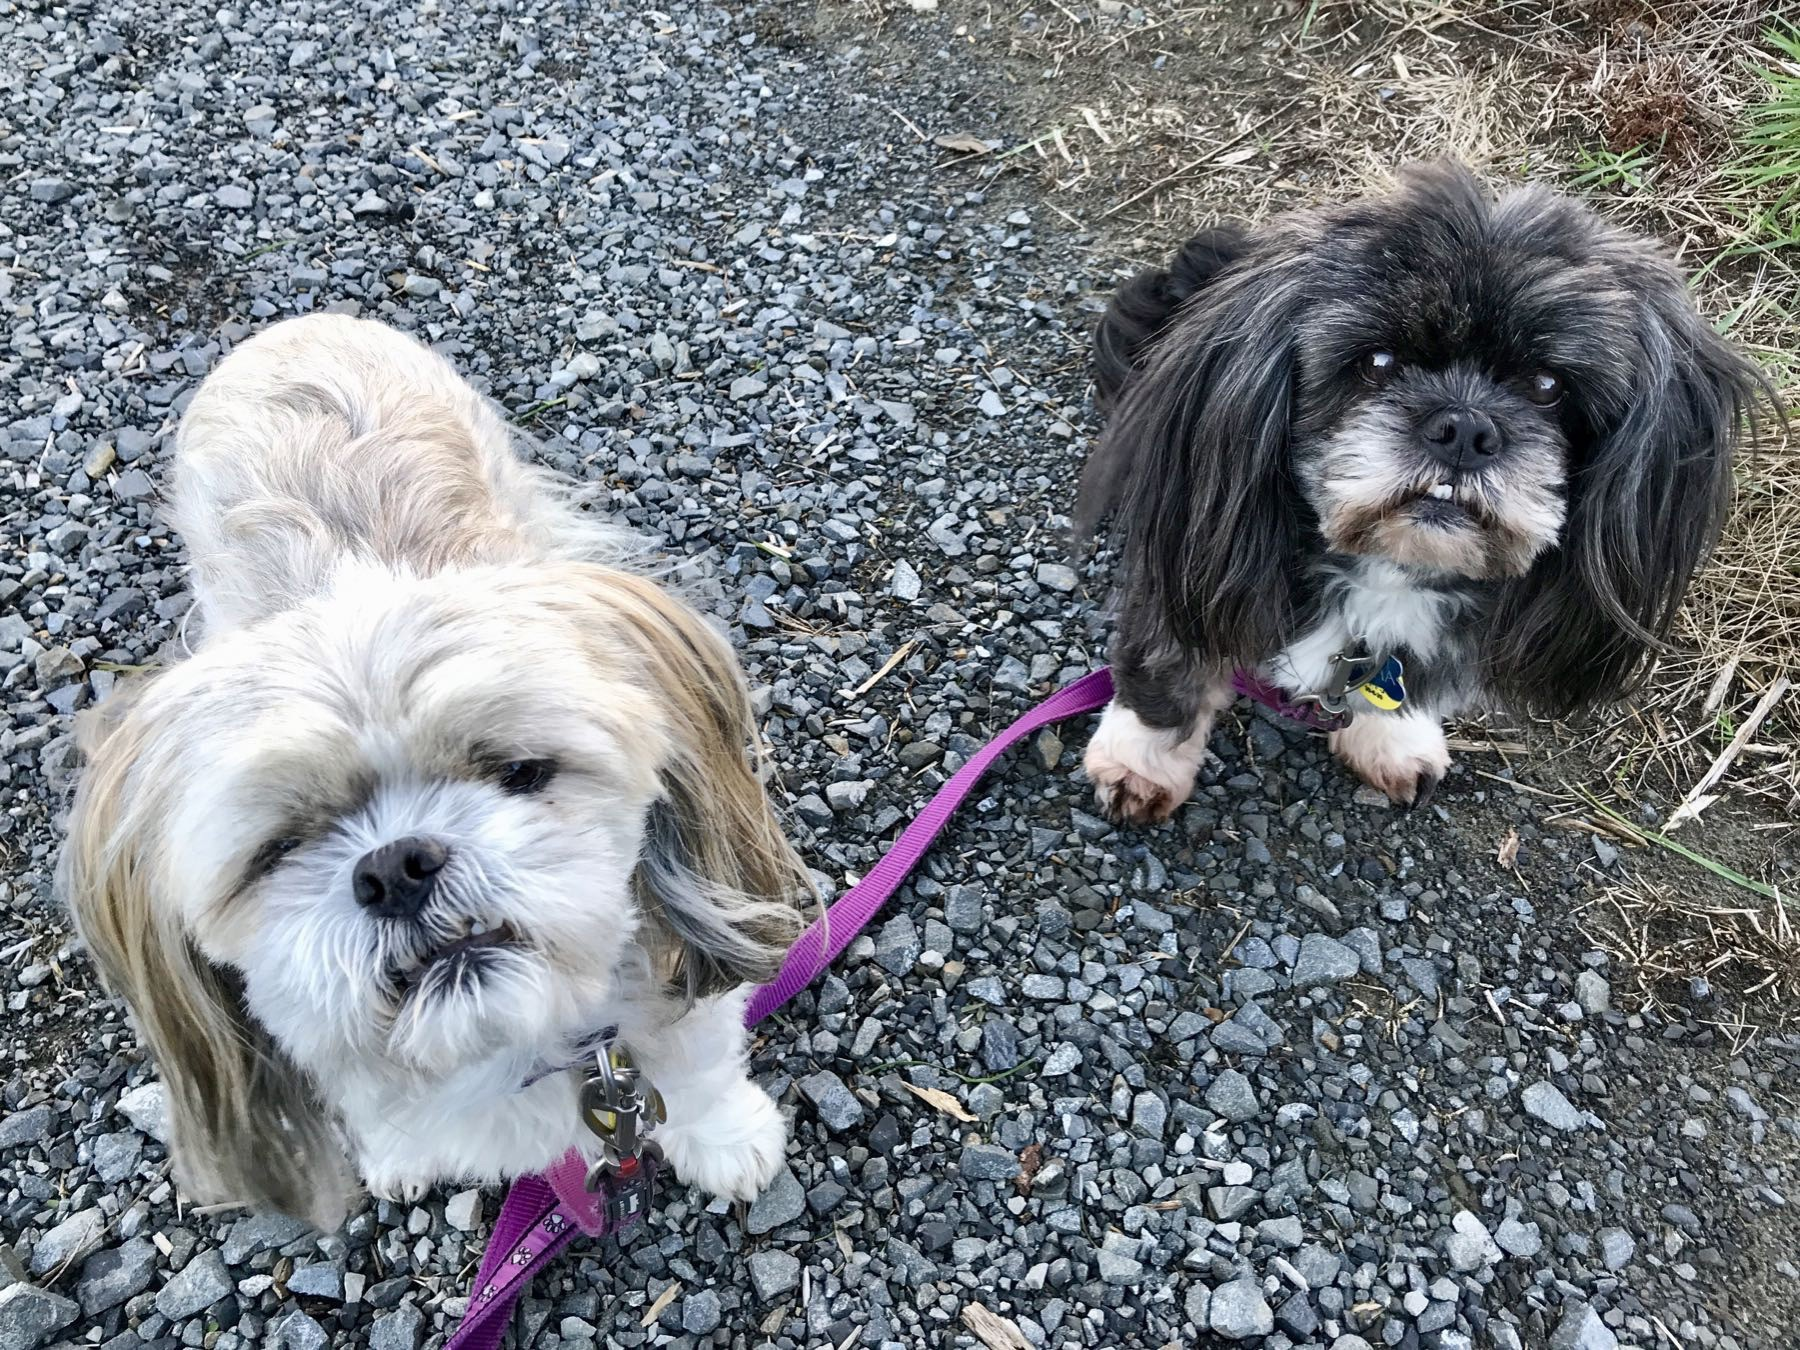 Two small shaggy dogs on a shingle path.